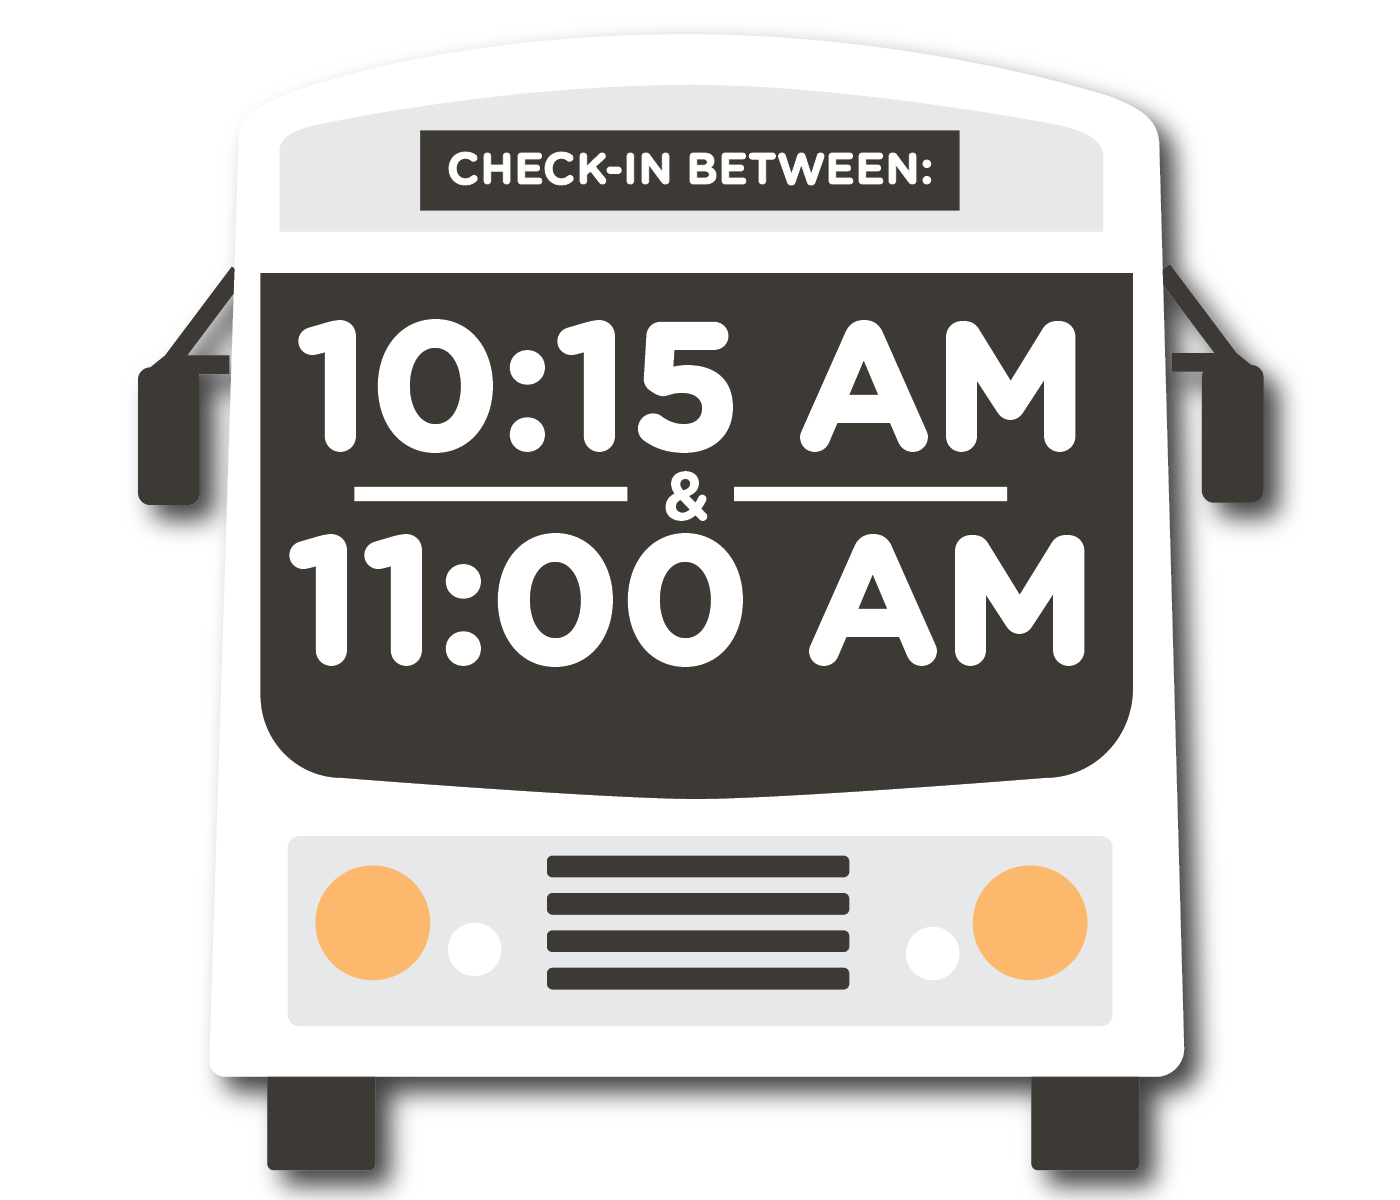 10:15 AM to 11:00 AM - Check-in Window